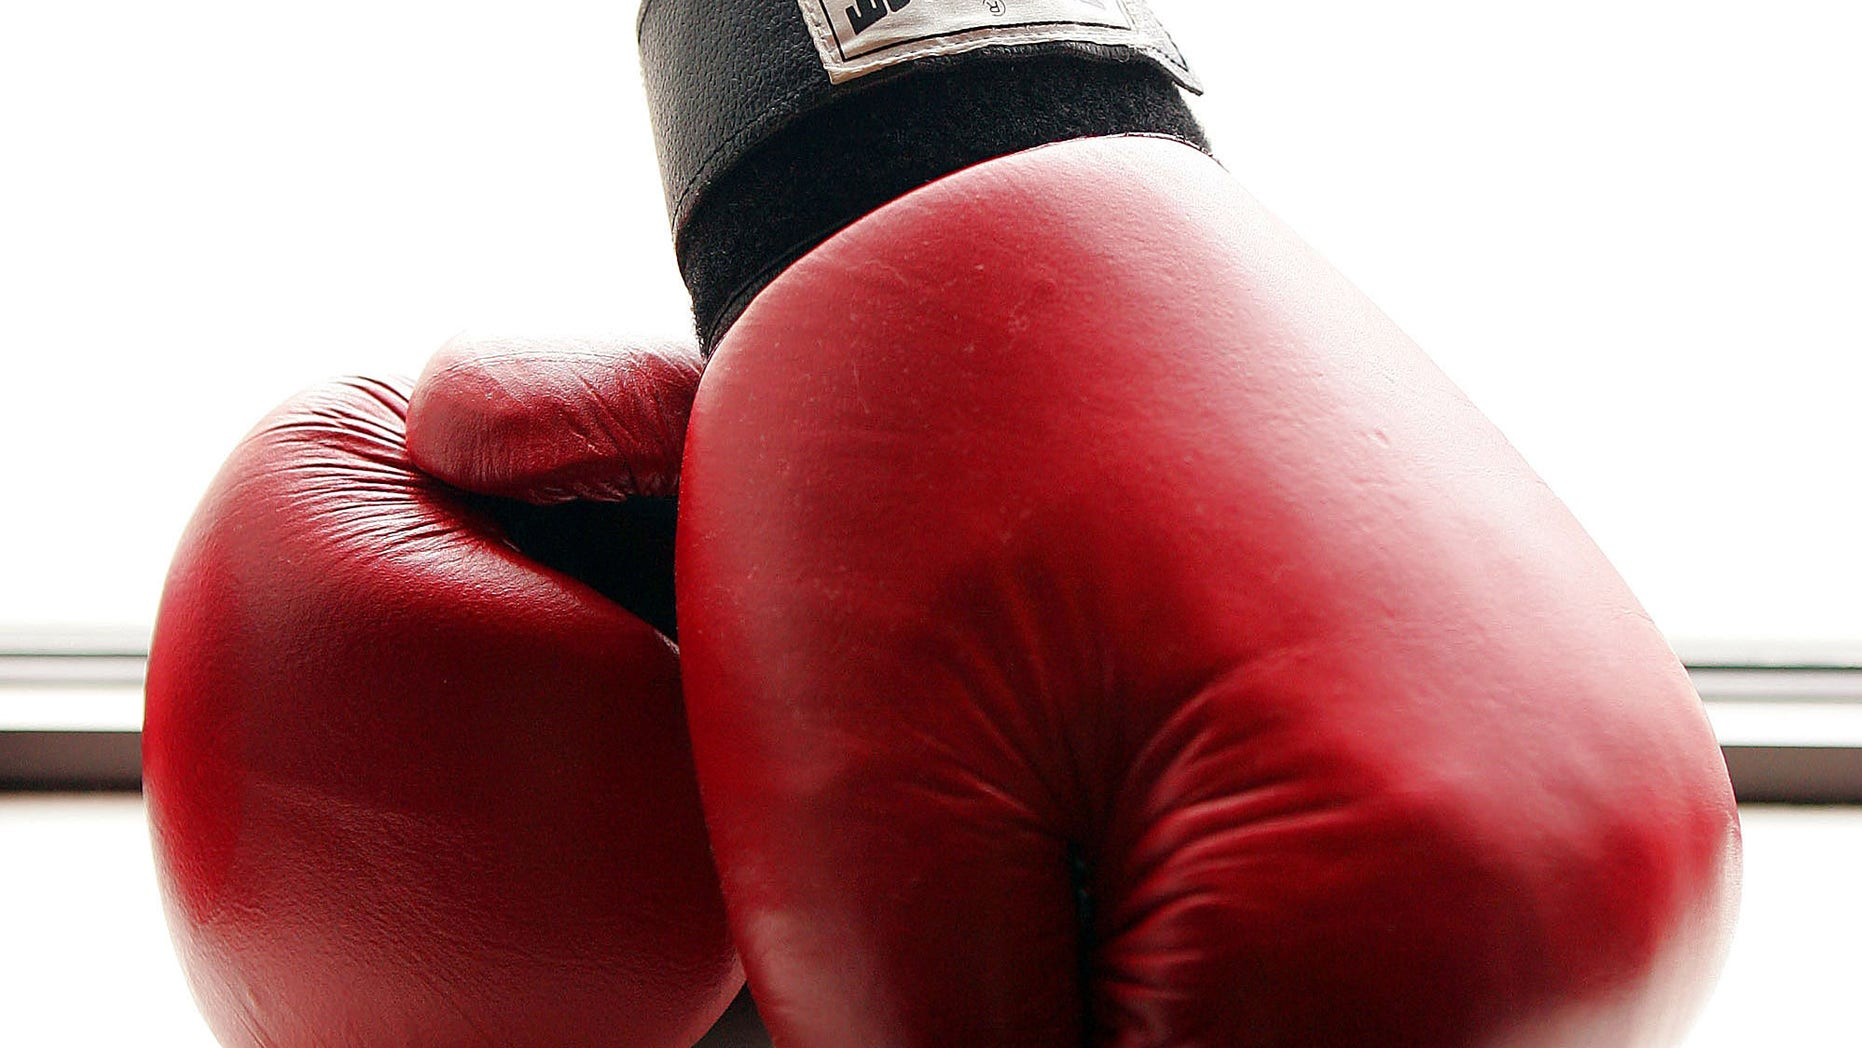 NEW YORK - AUGUST 26:  Boxing gloves at the Aerospace Performance Center on August 26, 2005 in New York City. (Photo by Scott Gries/Getty Images)